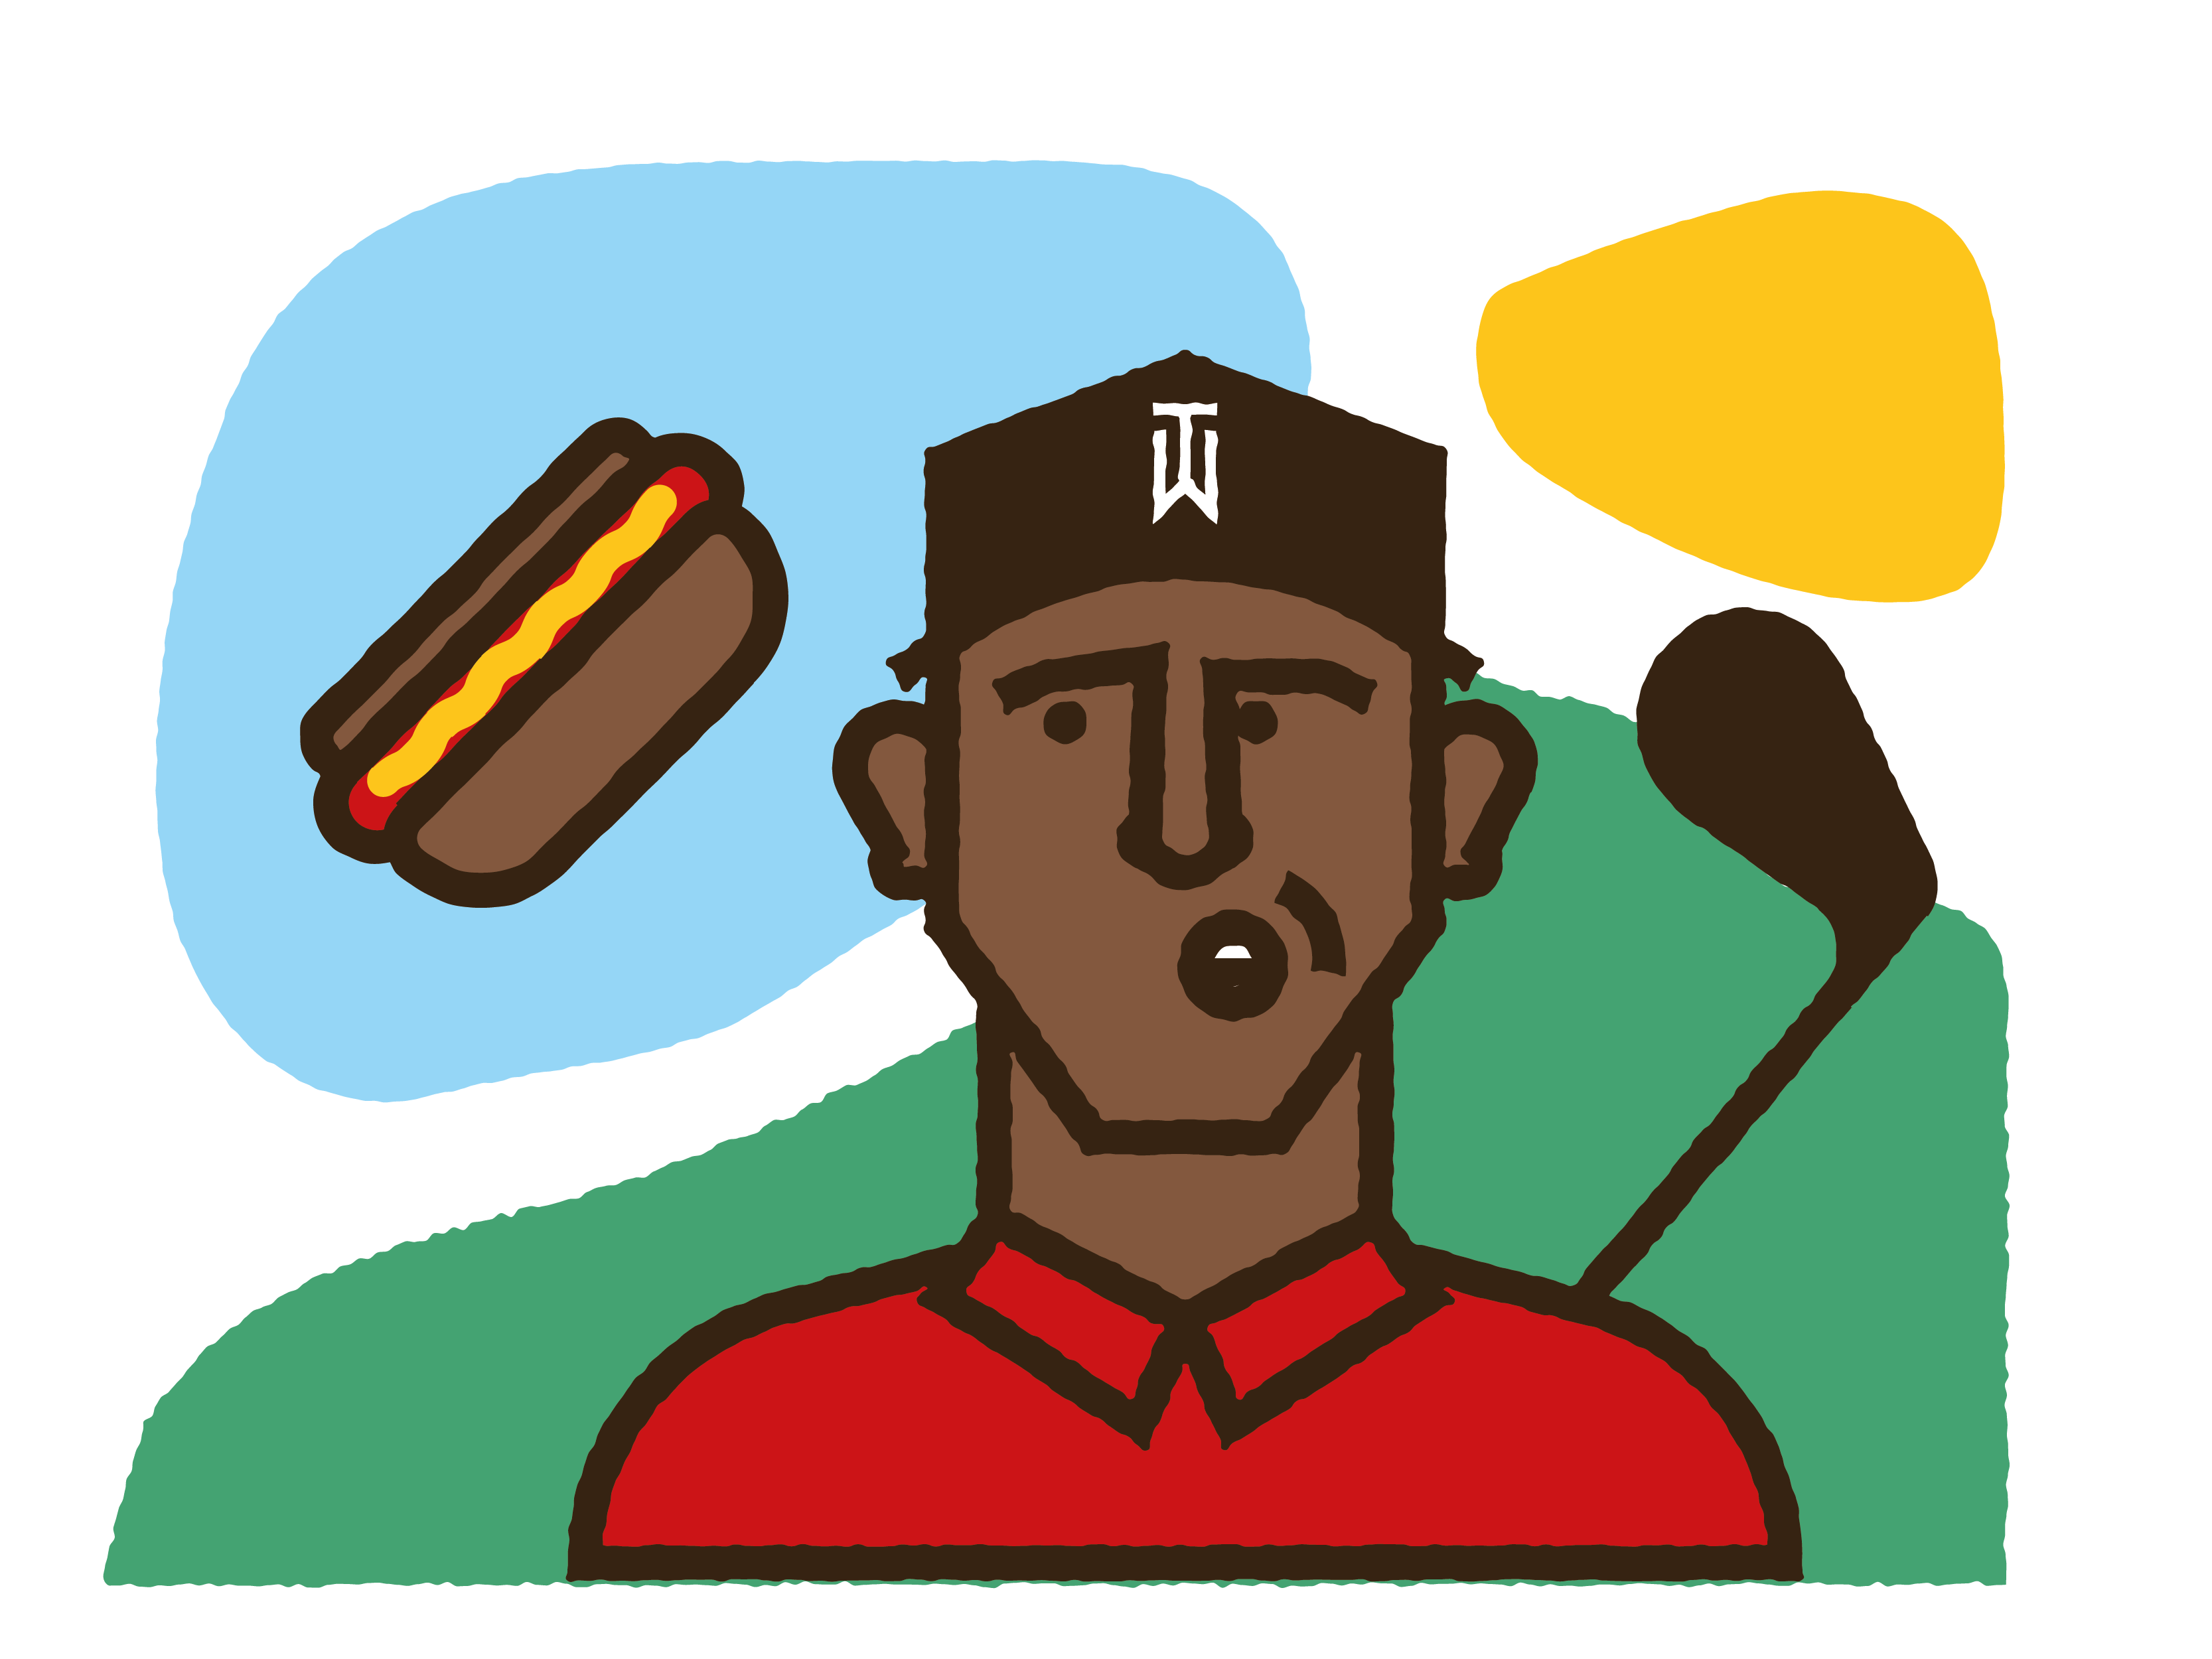 Bad clipart frankfurter. Tiger woods forty things